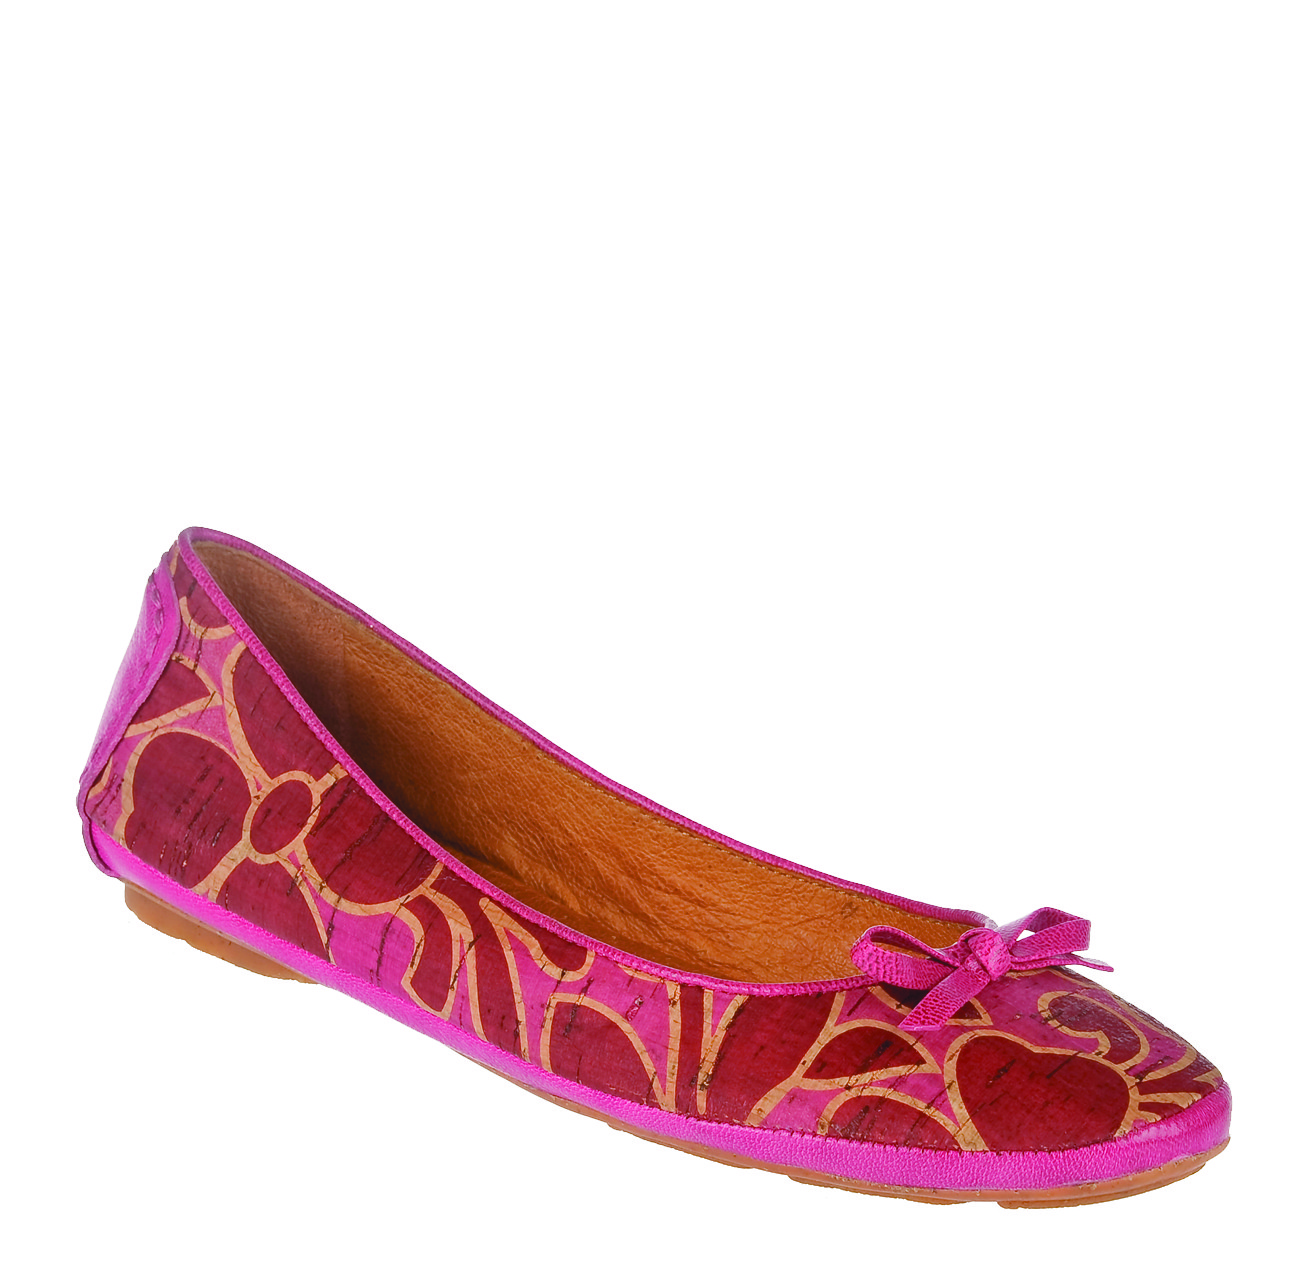 db7e6b95169a NAYA s comfort shoes meet vibrant shots of color-in feminine sandals for  SUMMER 2012 via wedges